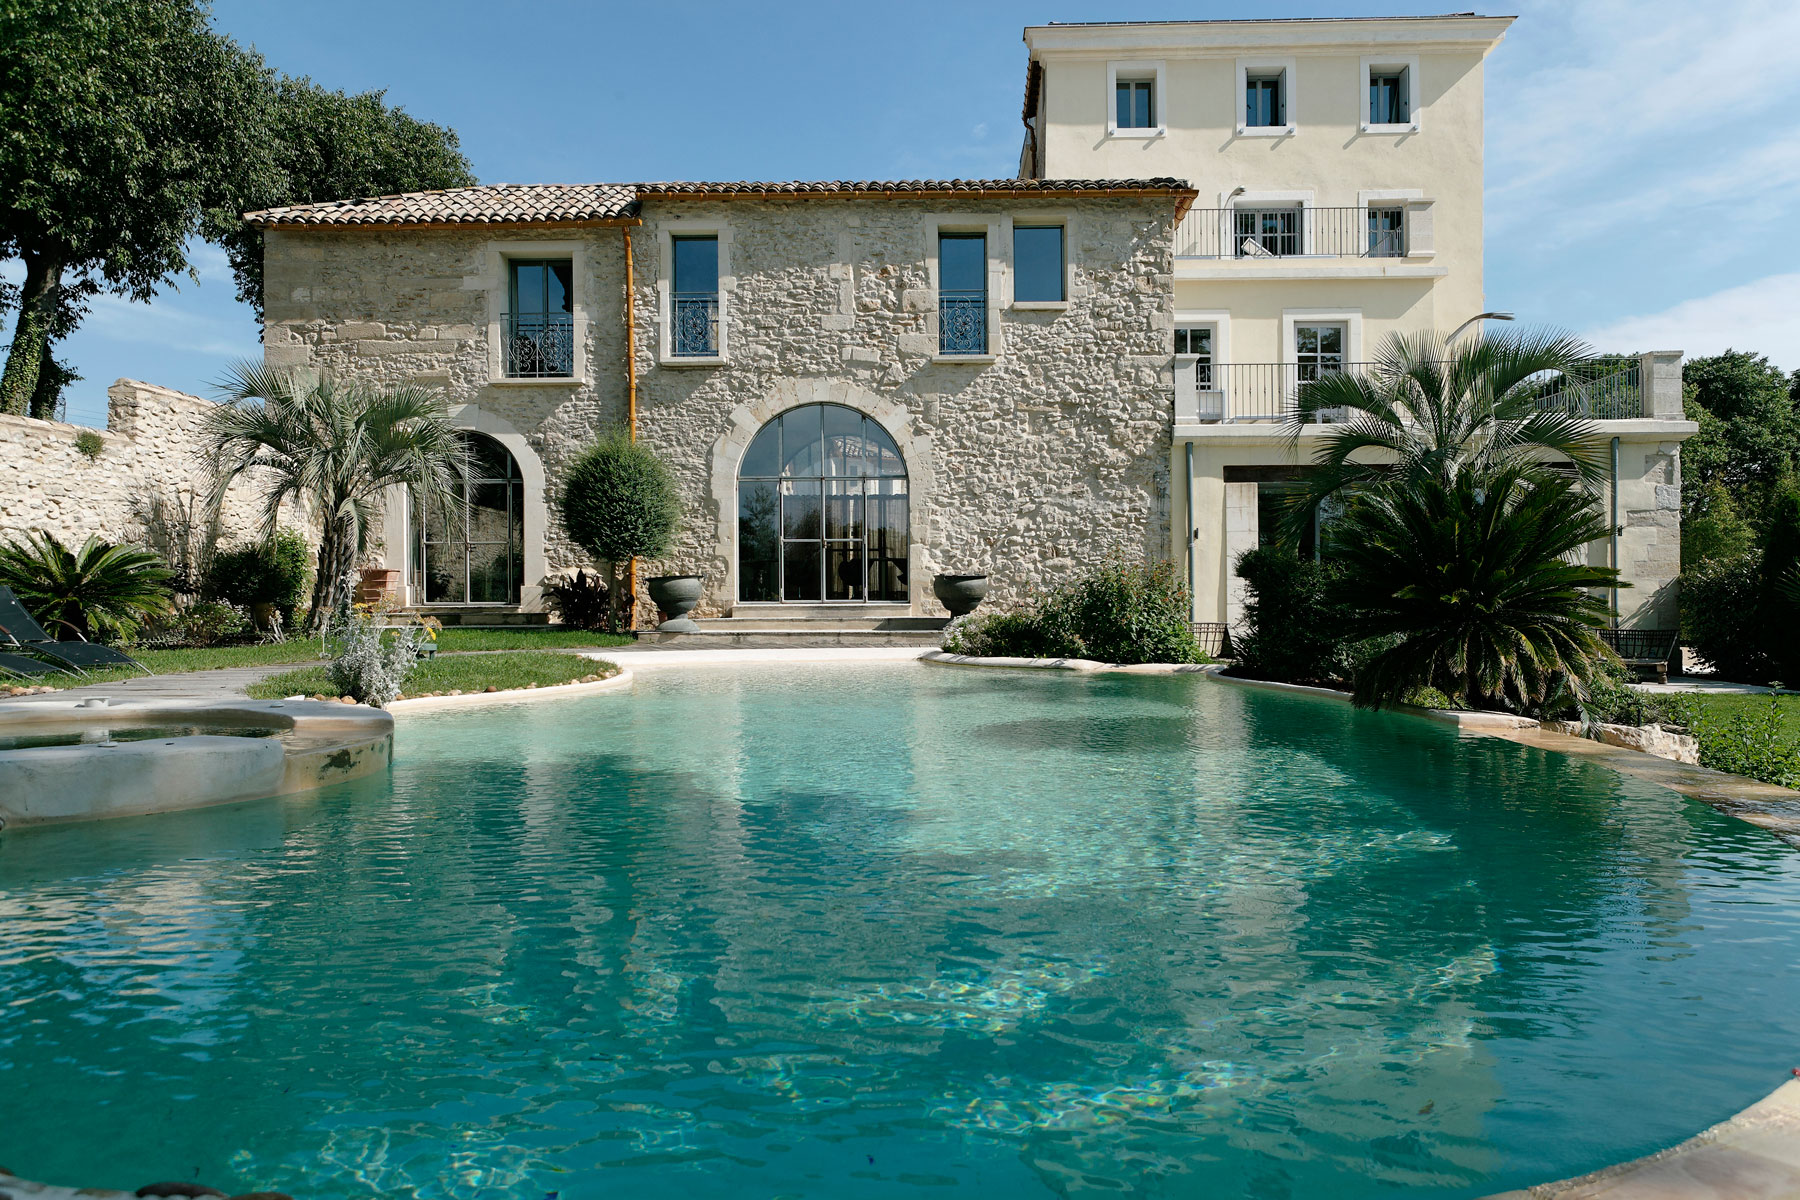 Domaine de Verchant is a luxury vineyard hotel located a short 15 minute drive from Montpellier airport